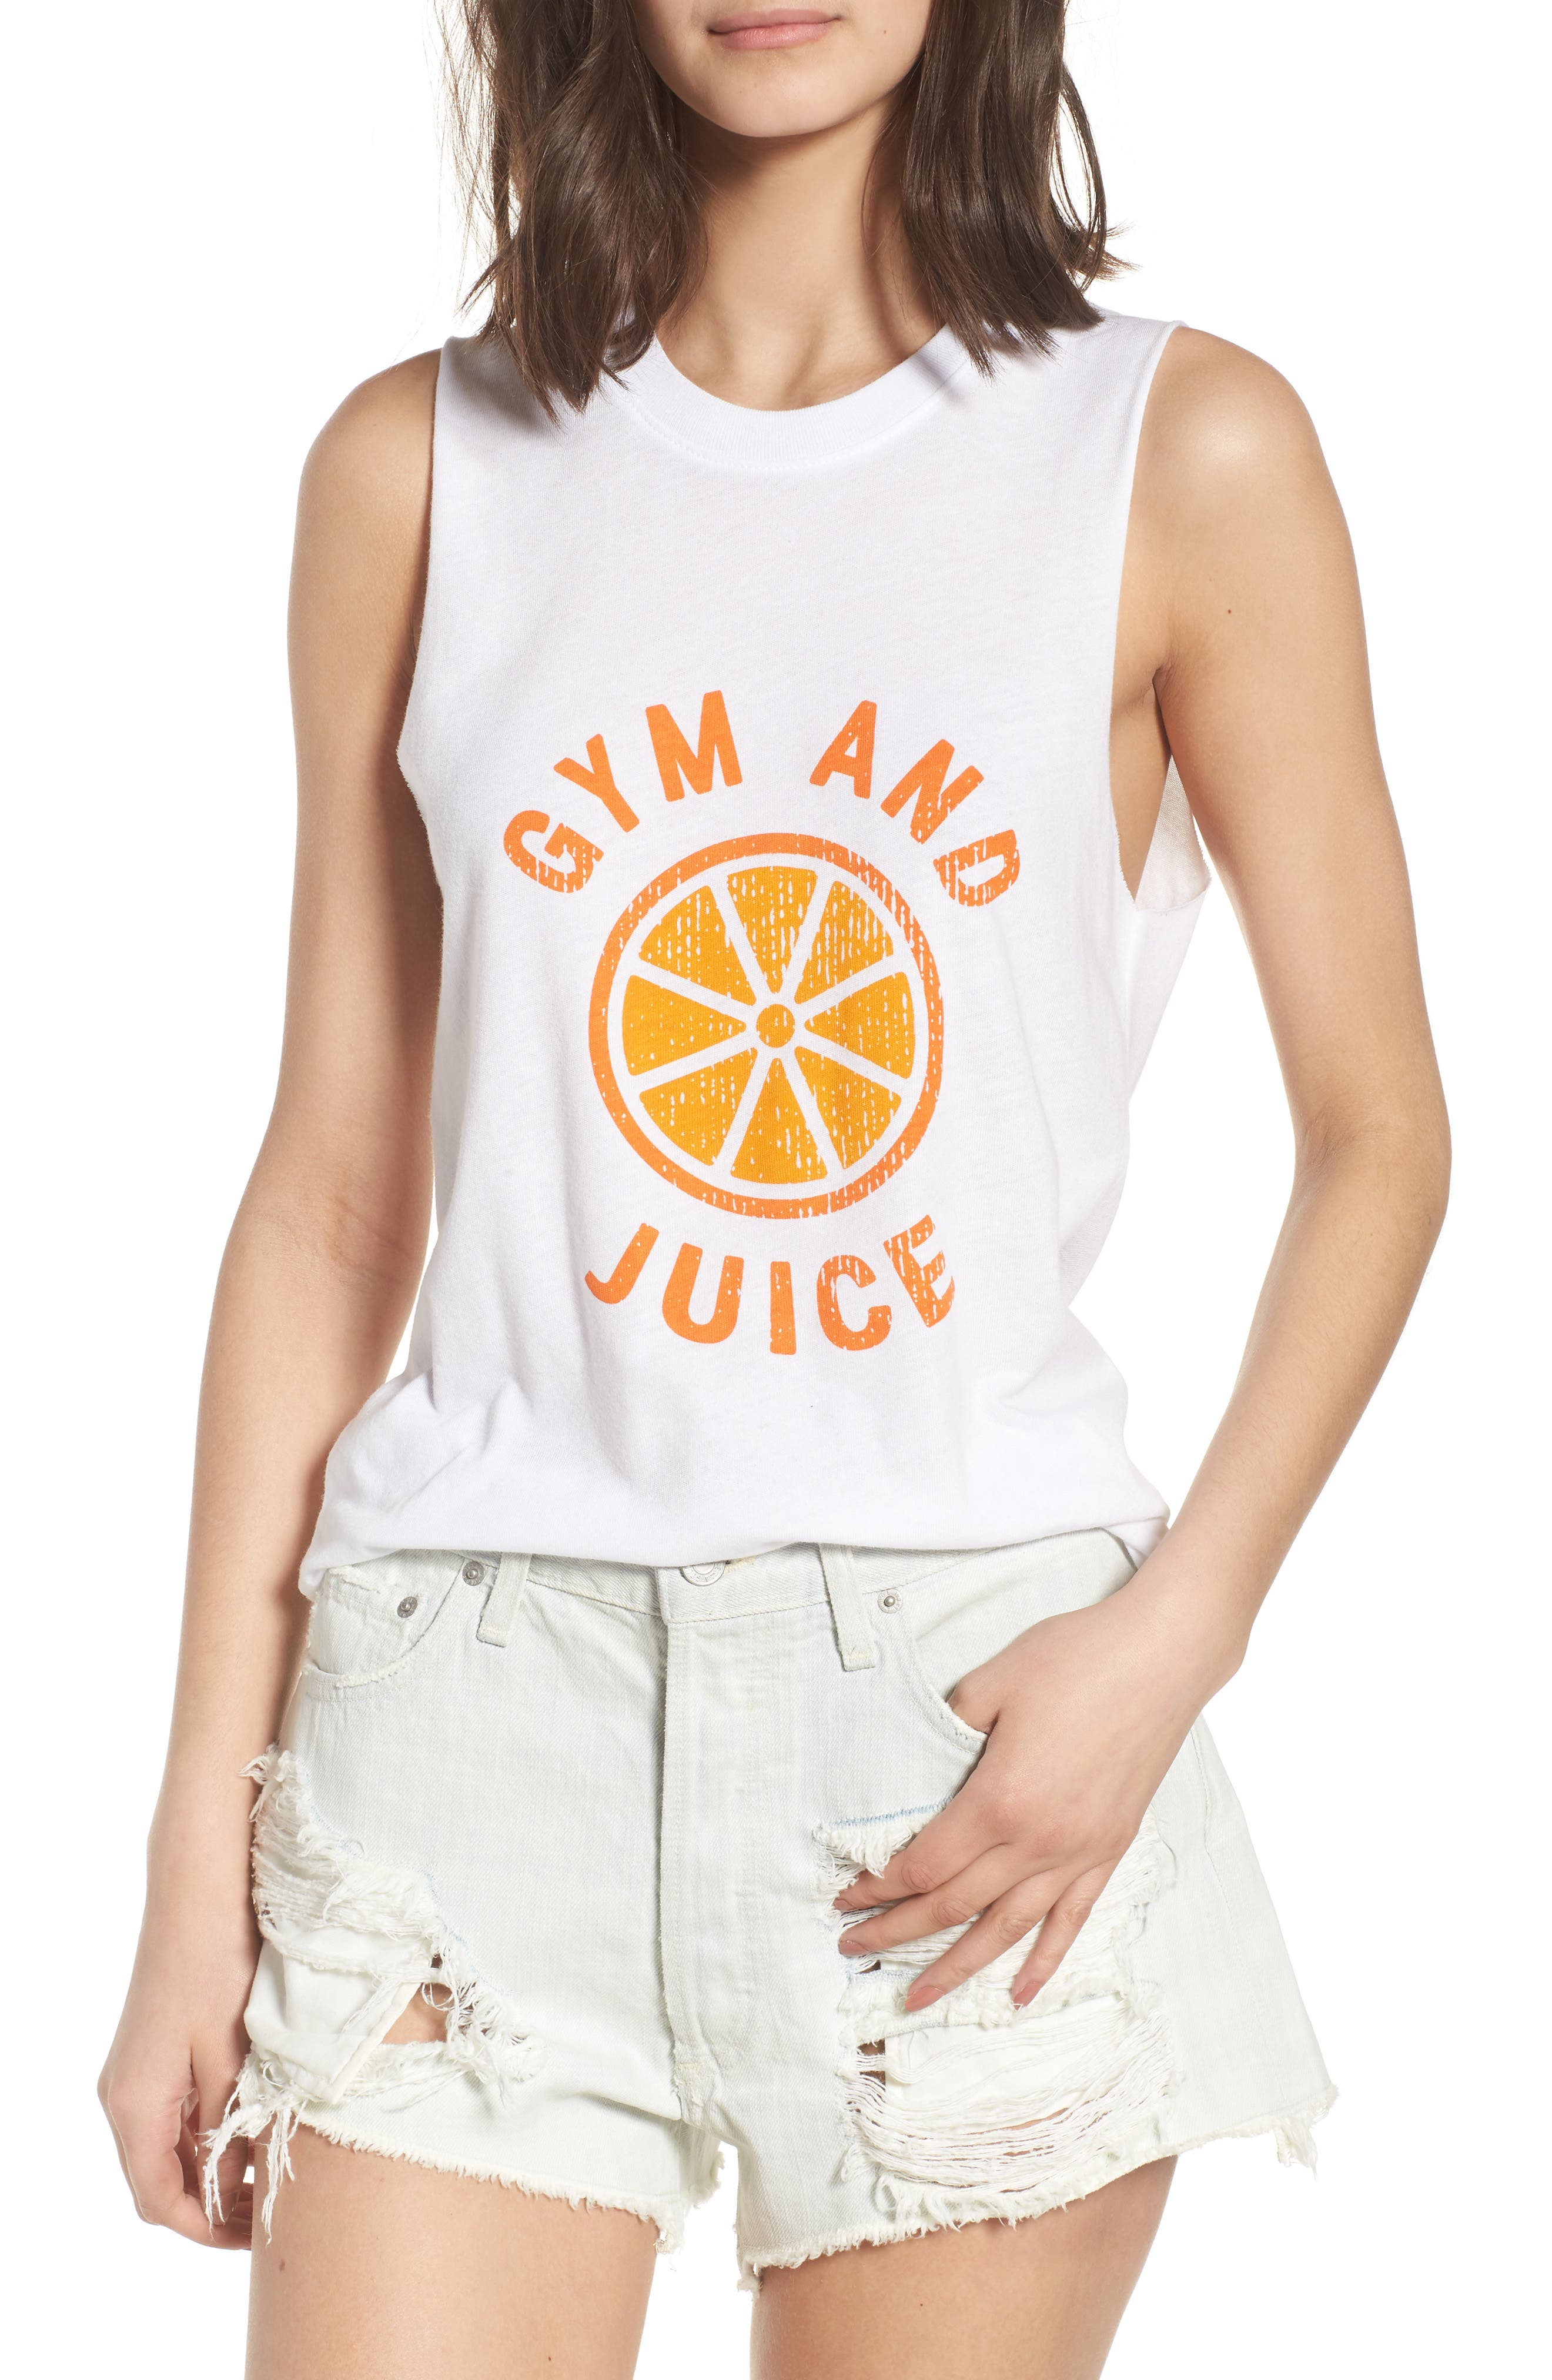 Gym and Juice Muscle Tank Top,                             Main thumbnail 1, color,                             100